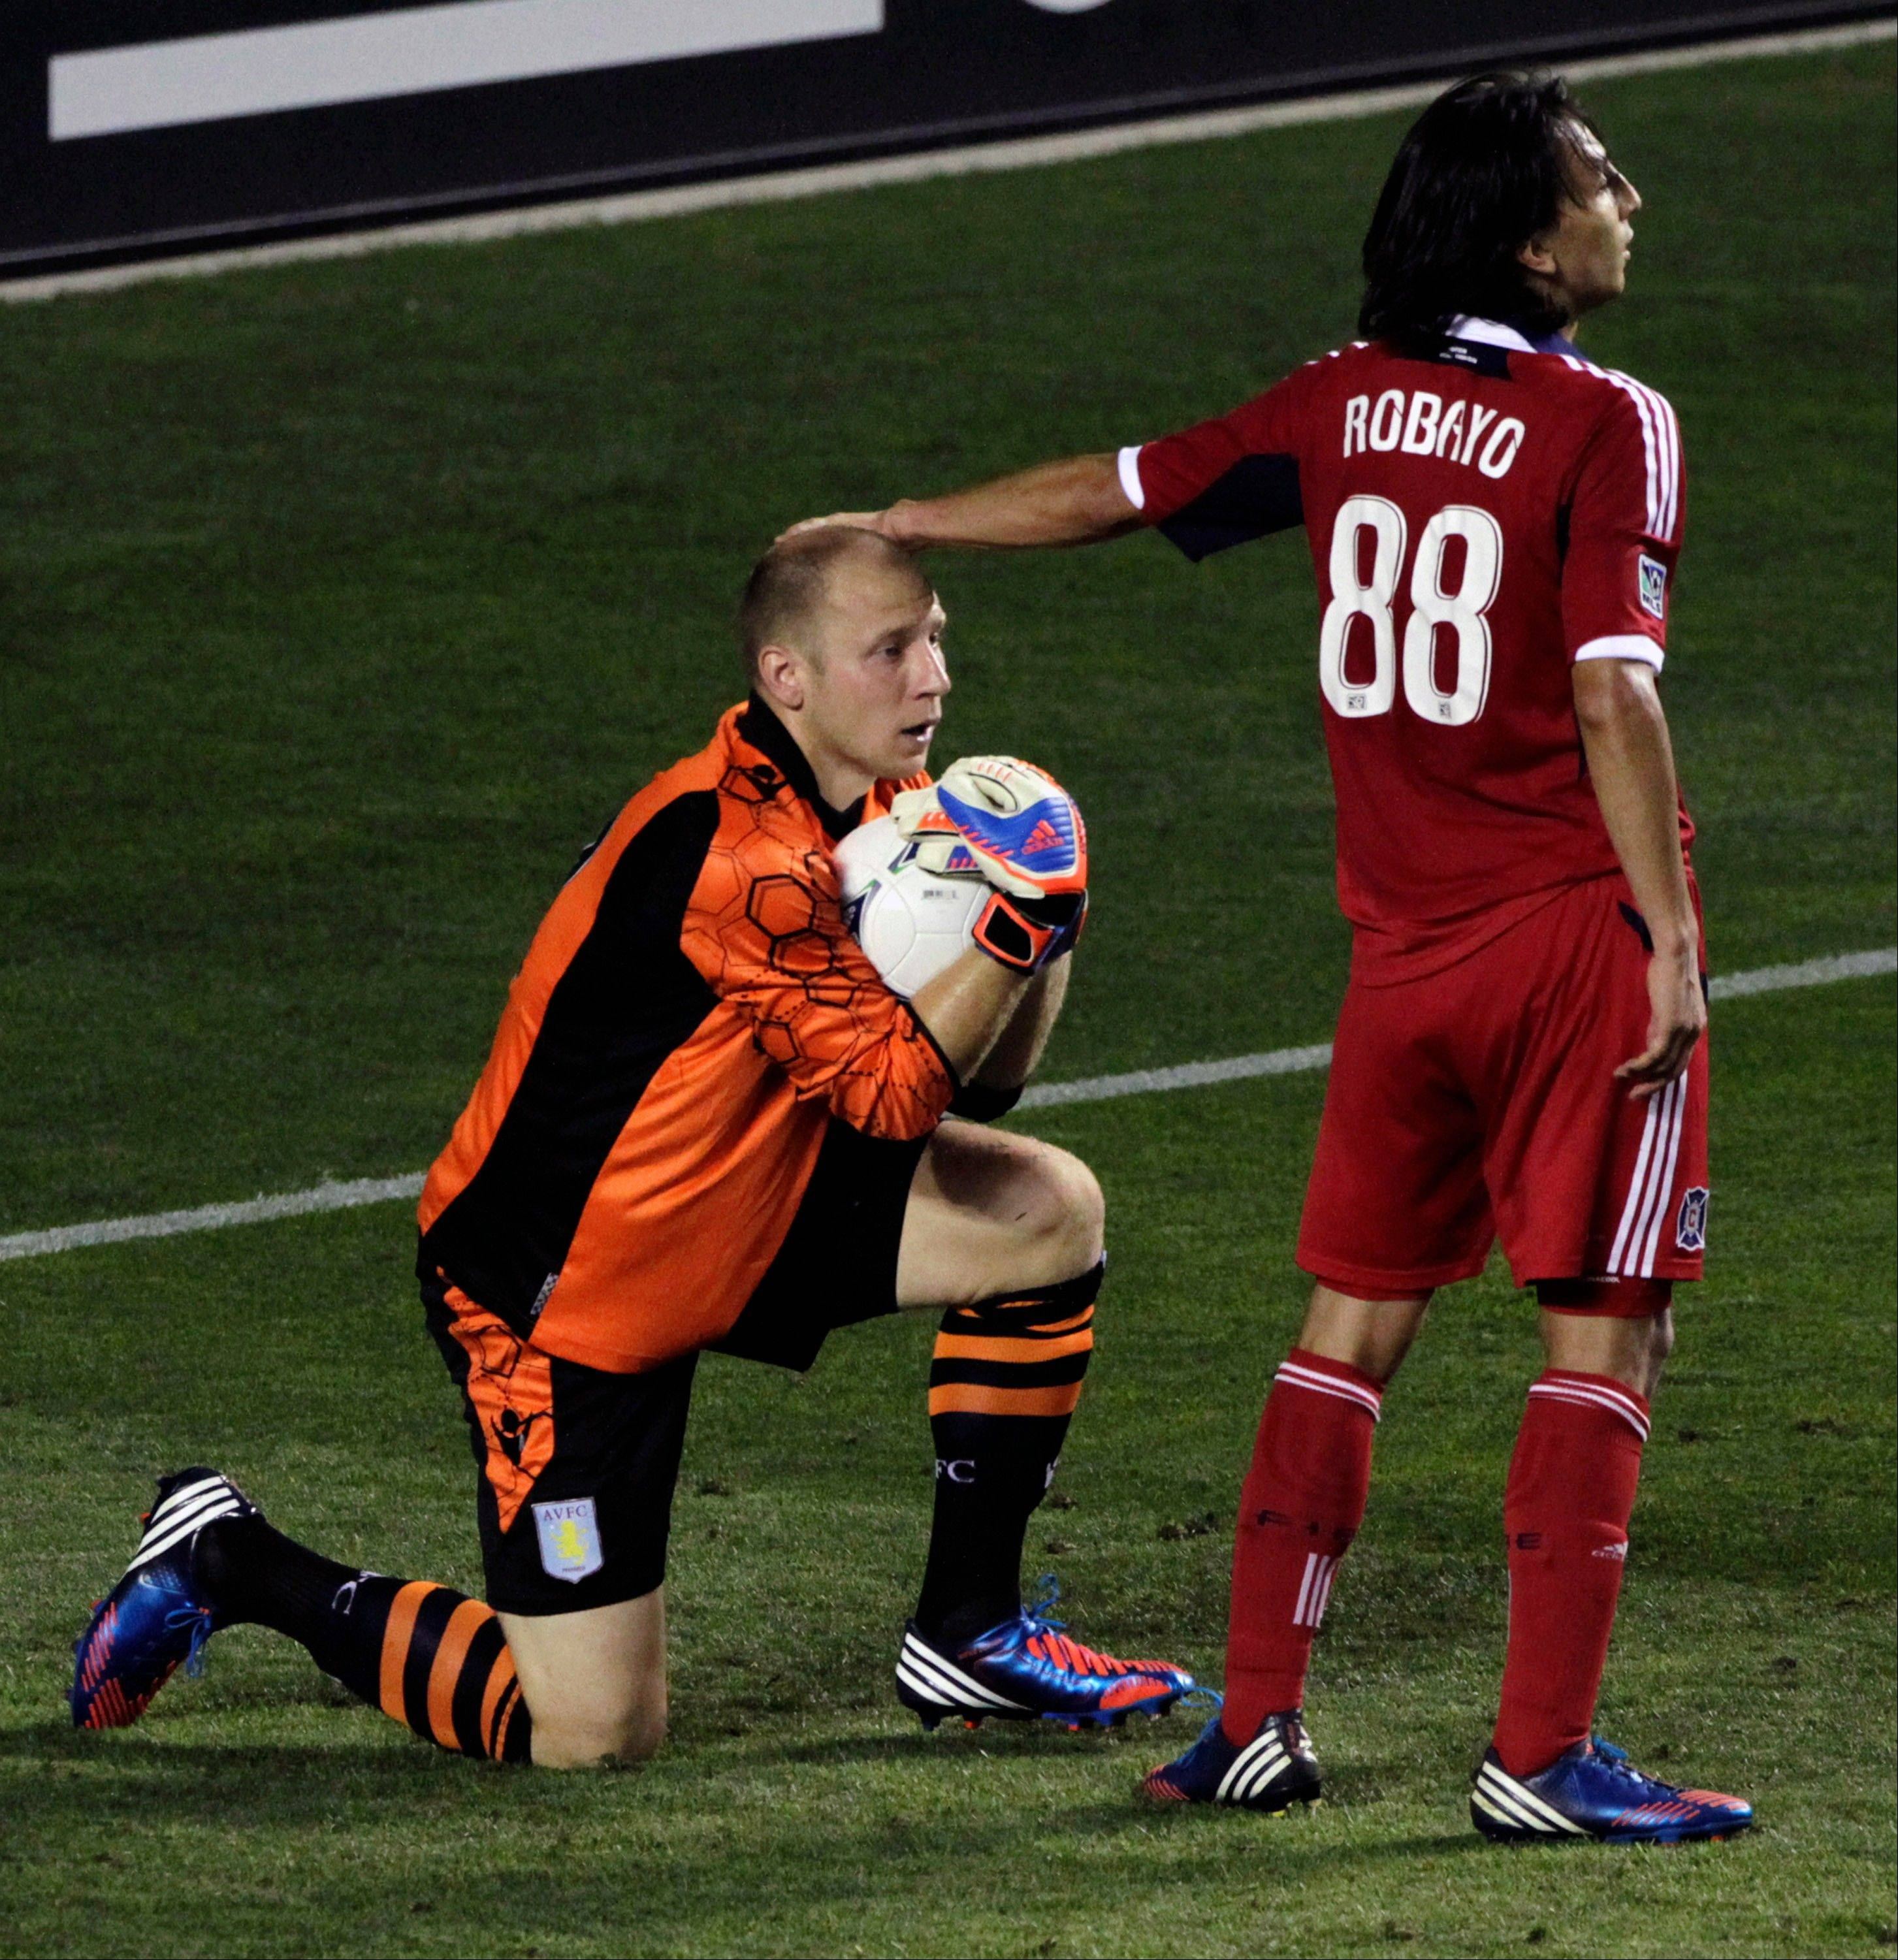 Aston Villa�s goalie Brad Guzan, left, gets a pat the head by Chicago Fire�s Rafael Robayo after making a last-second save during the second half of a friendly soccer game on Saturday, July 21, 2012, at Toyota Park in Bridgeview, Ill. Aston Villa won 1-0.